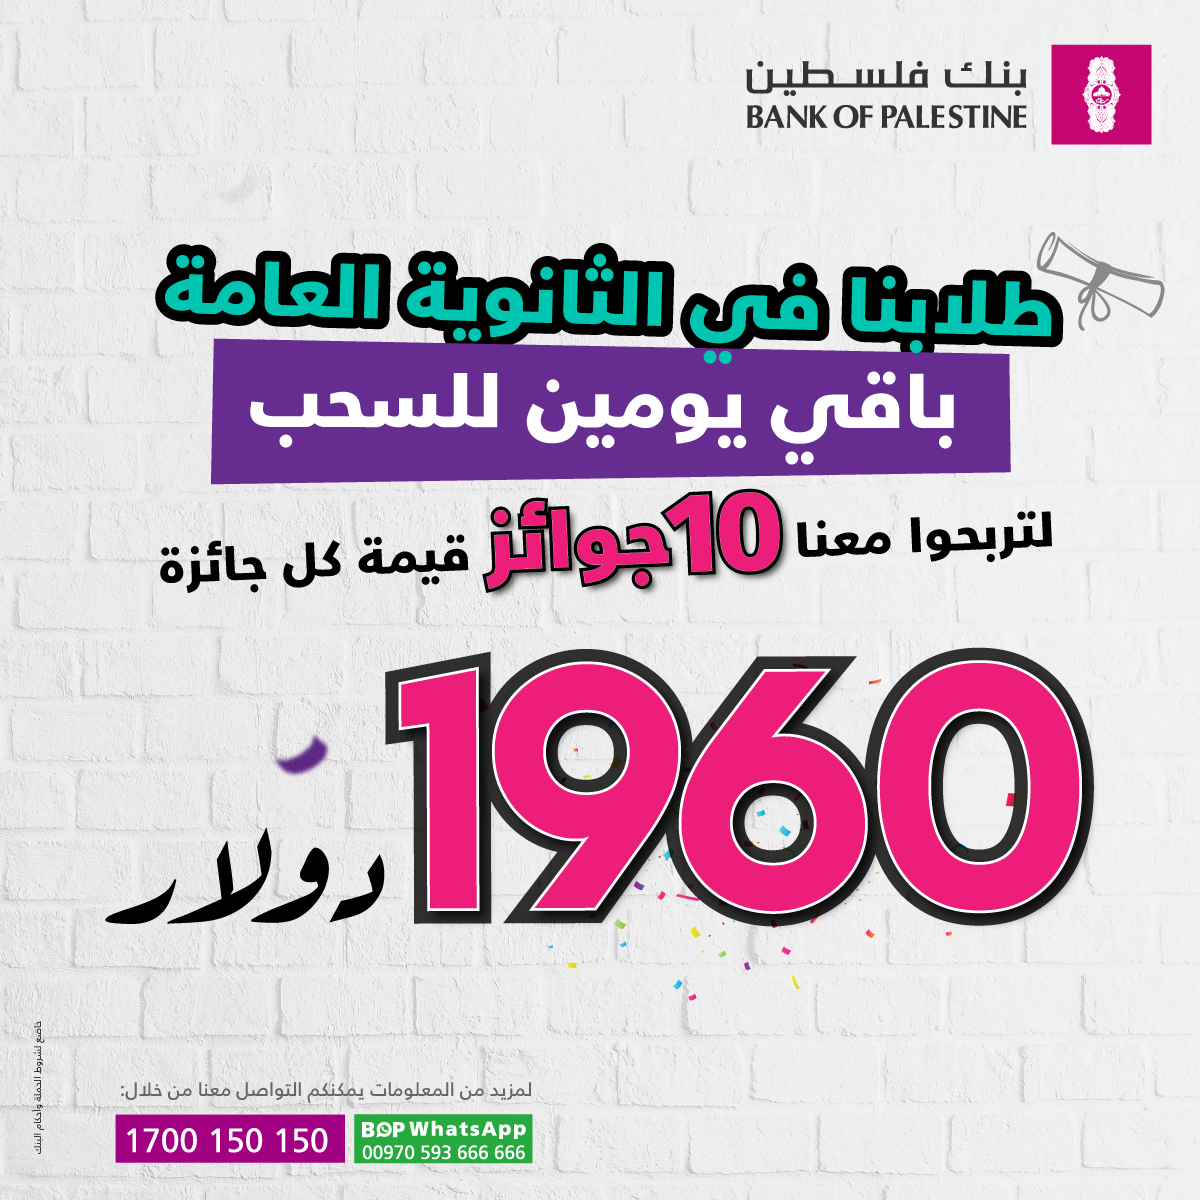 Bank of Palestine launches a special campaign for students who passed their Tawjihi examinations. The draw will take place on 17 August